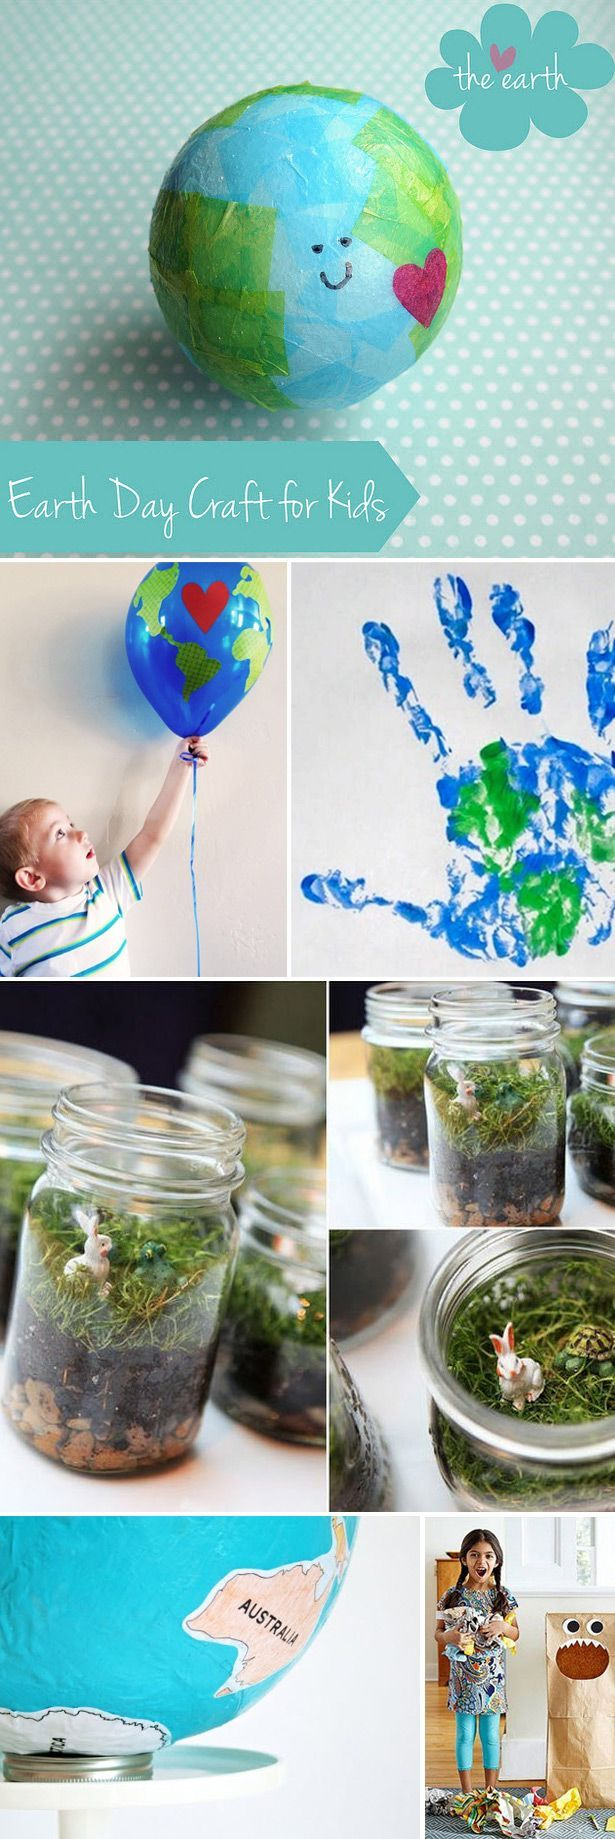 Earth Day Crafts With Kids                                                                                                                                                                                 More